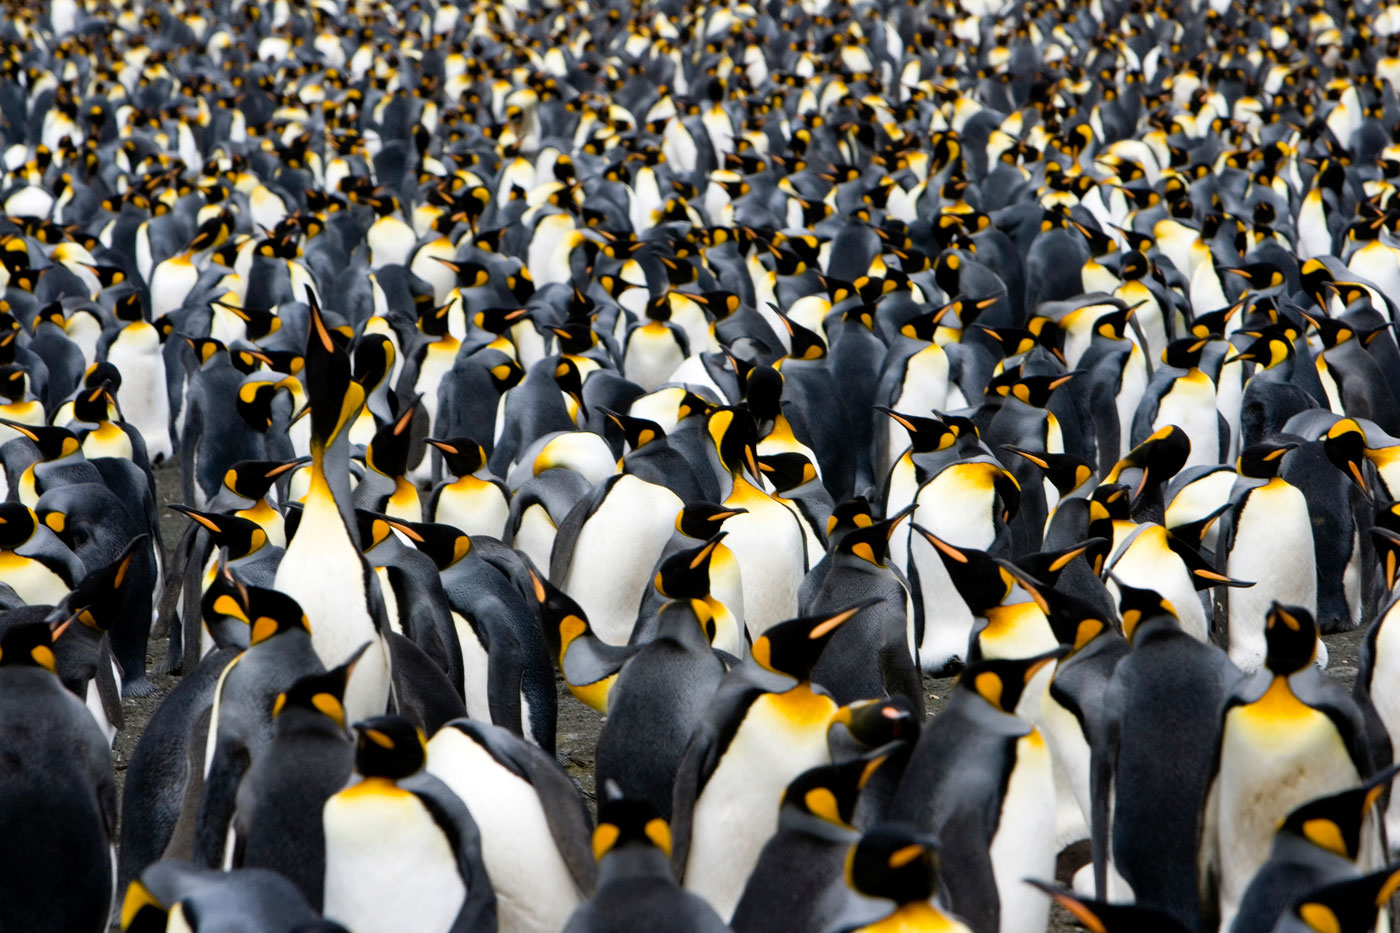 King Penguins by the thousands